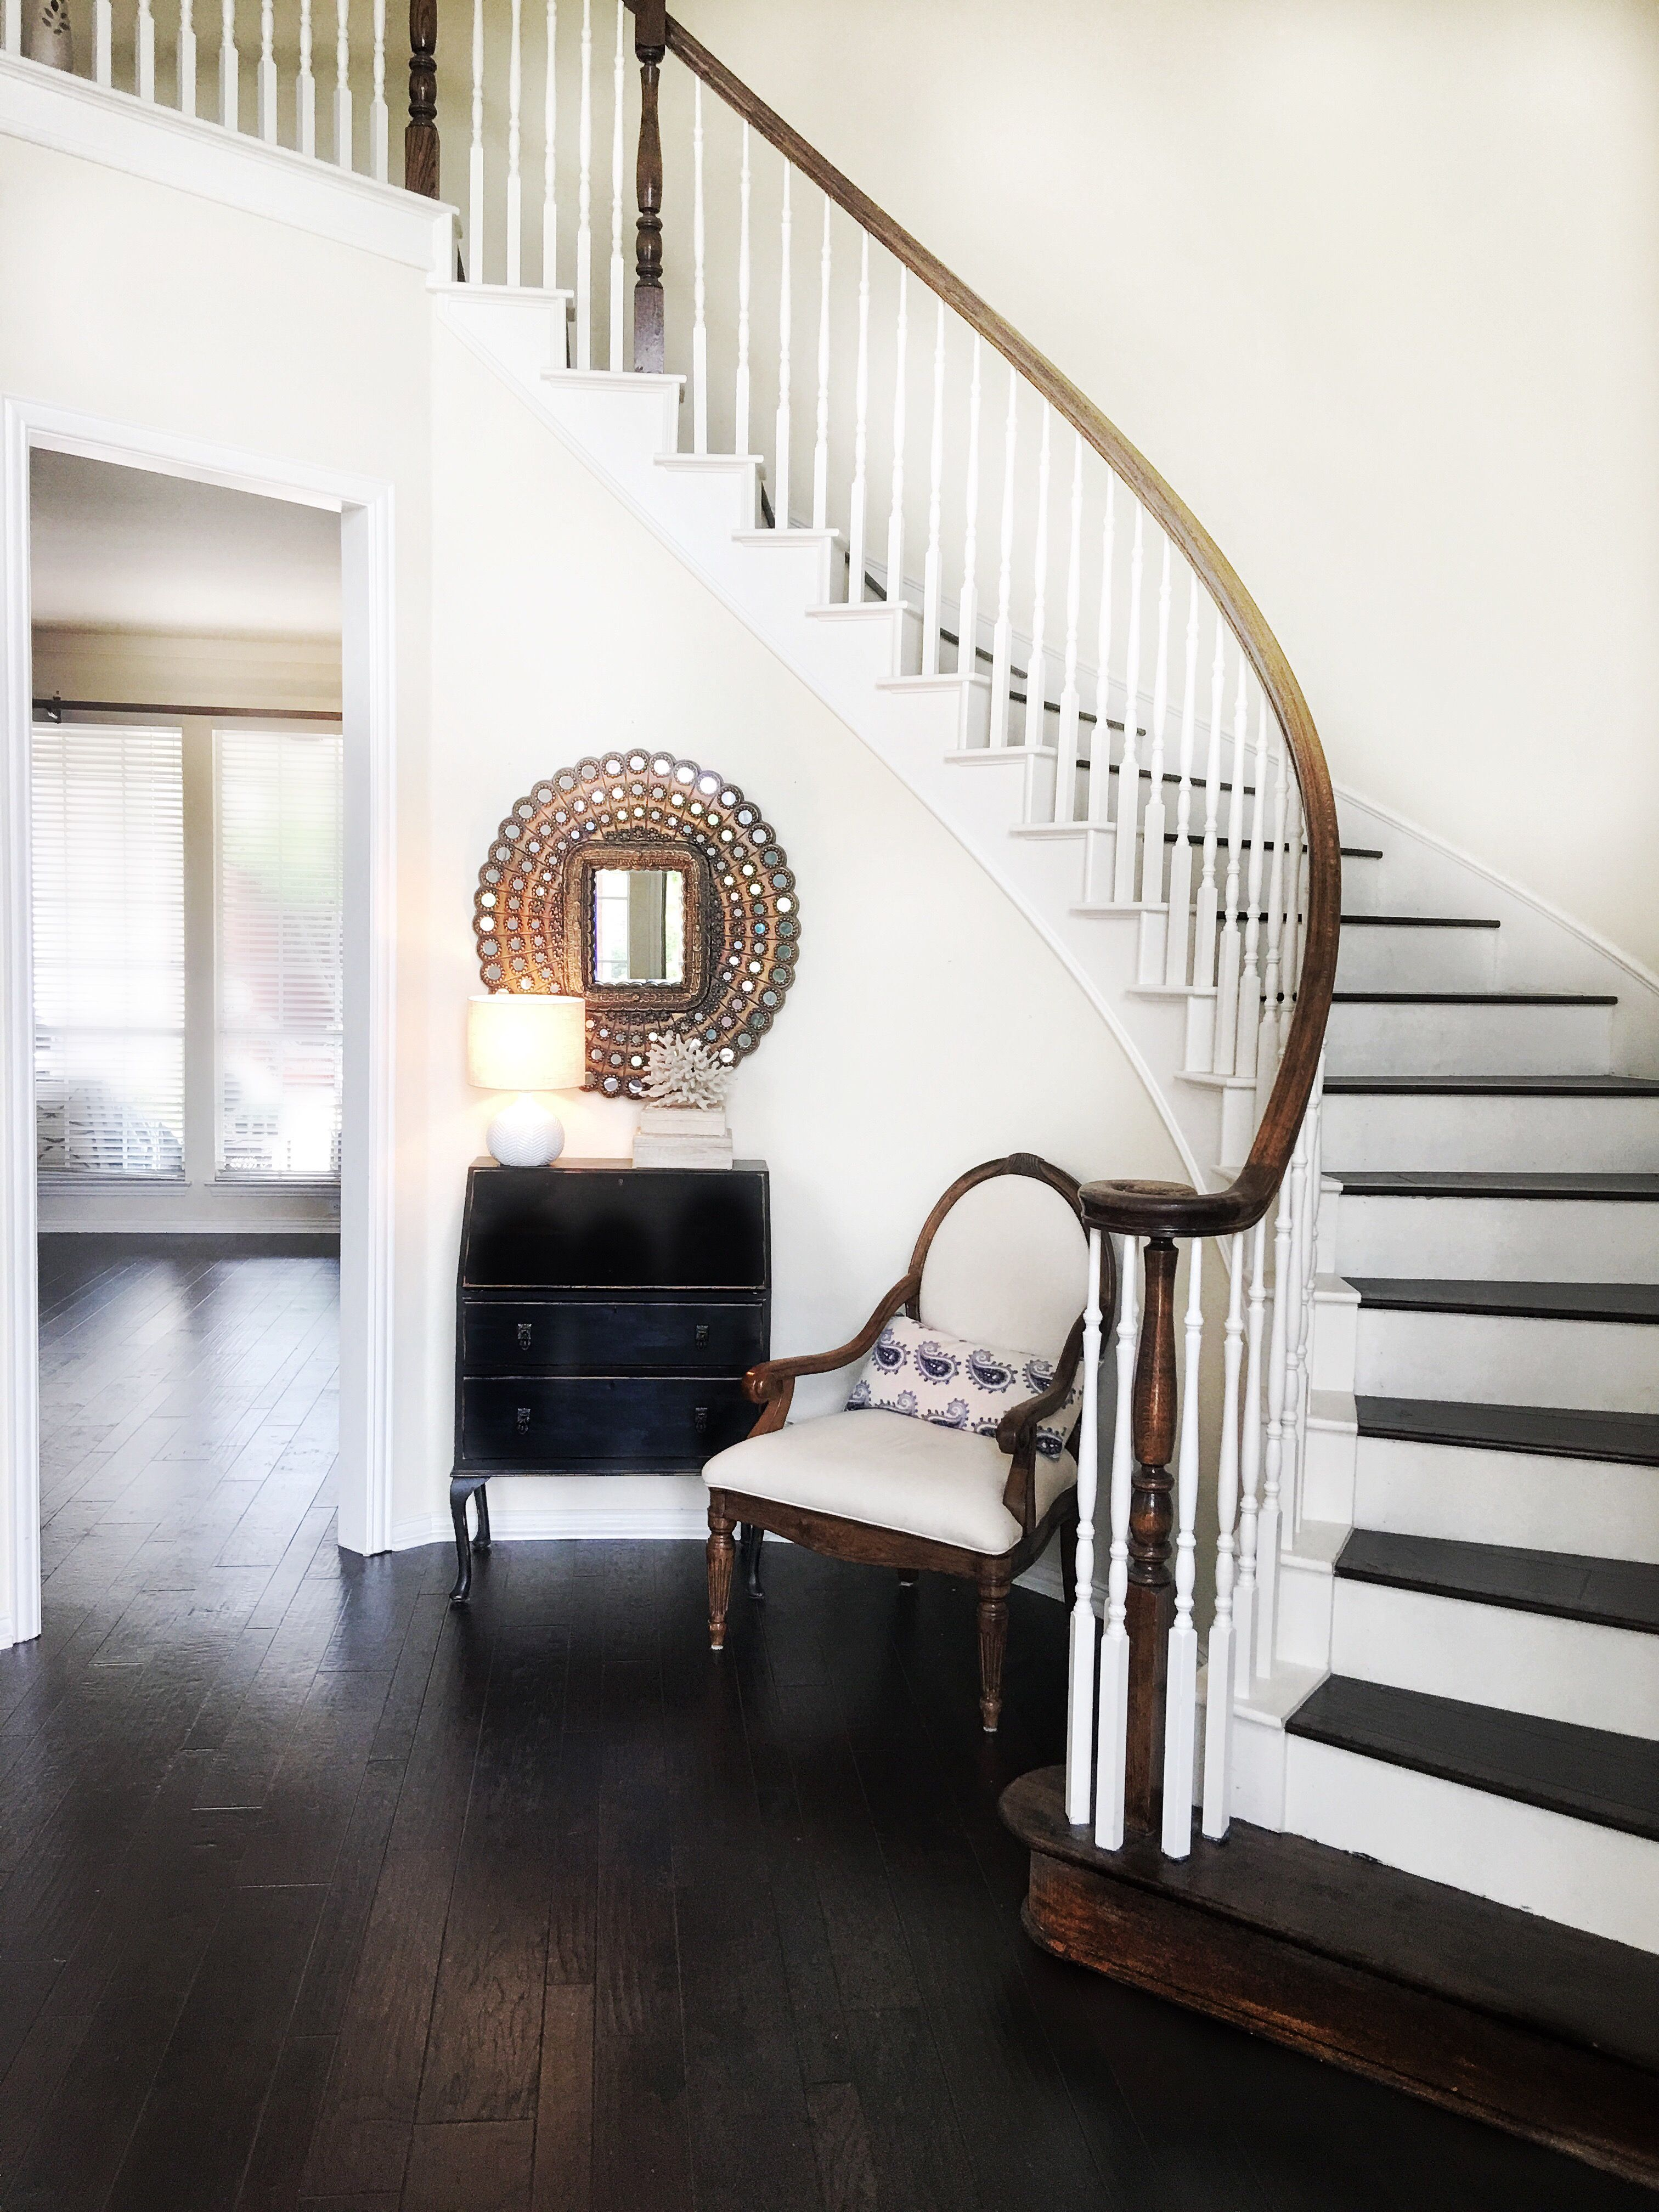 small modern decorations contemporary gallery unique ideas decor foyer interior trgn lovely of design entryway